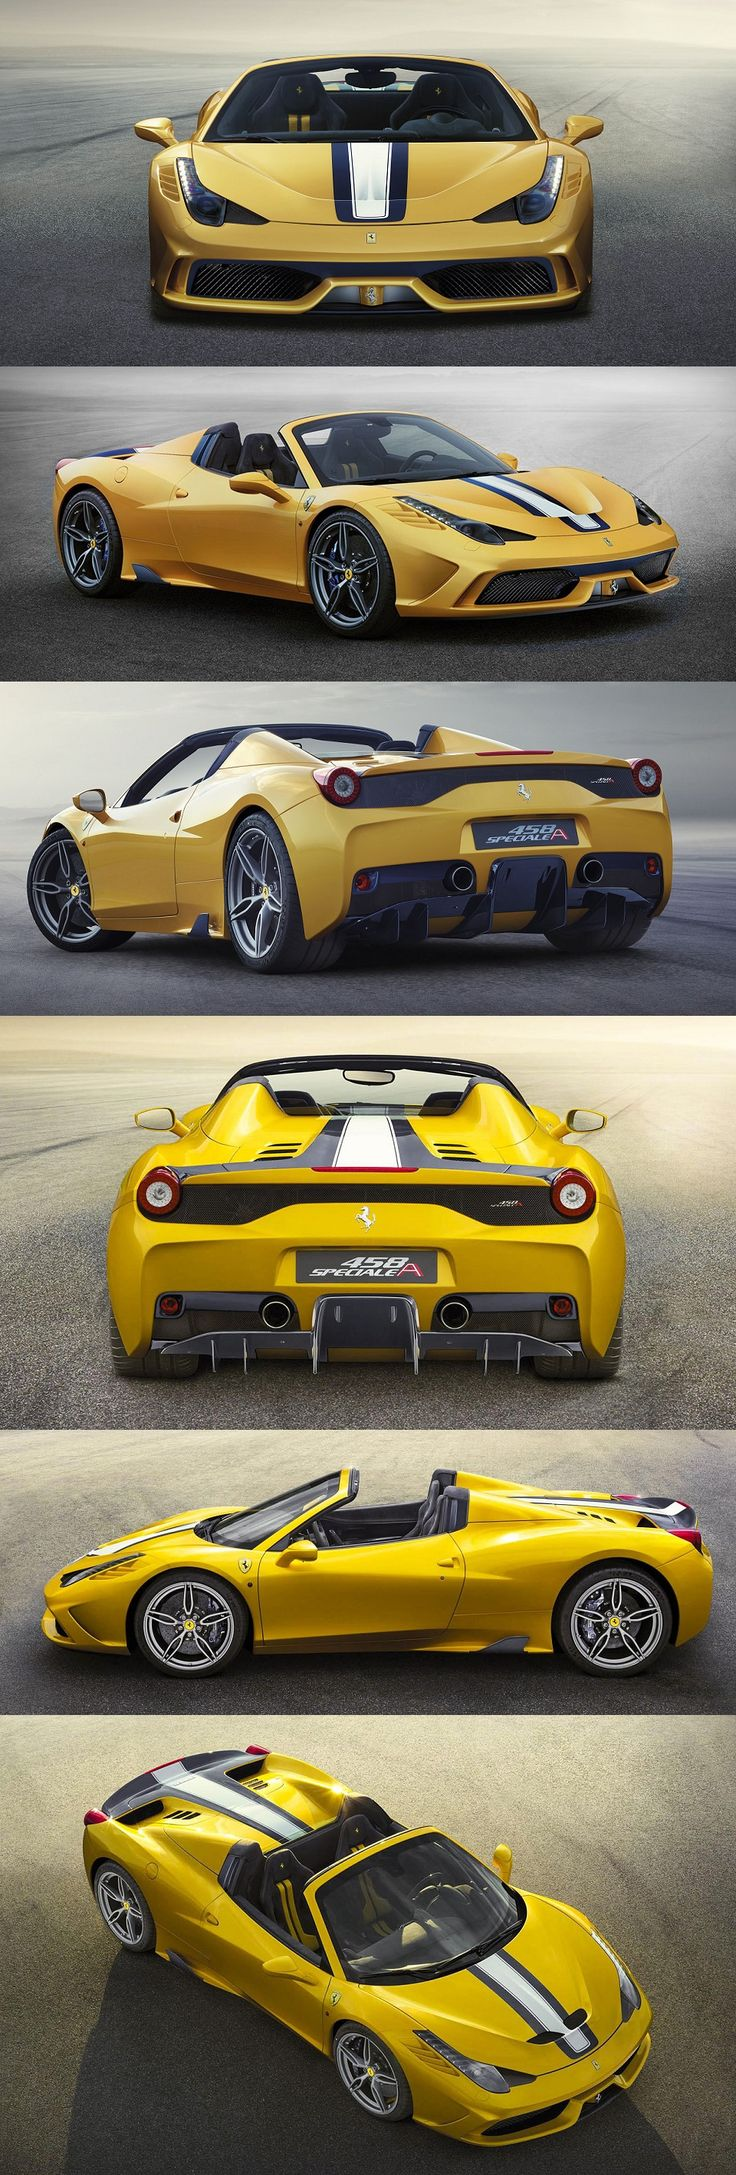 #Ferrari 458 Speciale —wrap1 #coupon code nicesup123 gets 25% off at  leadingedgehealth…